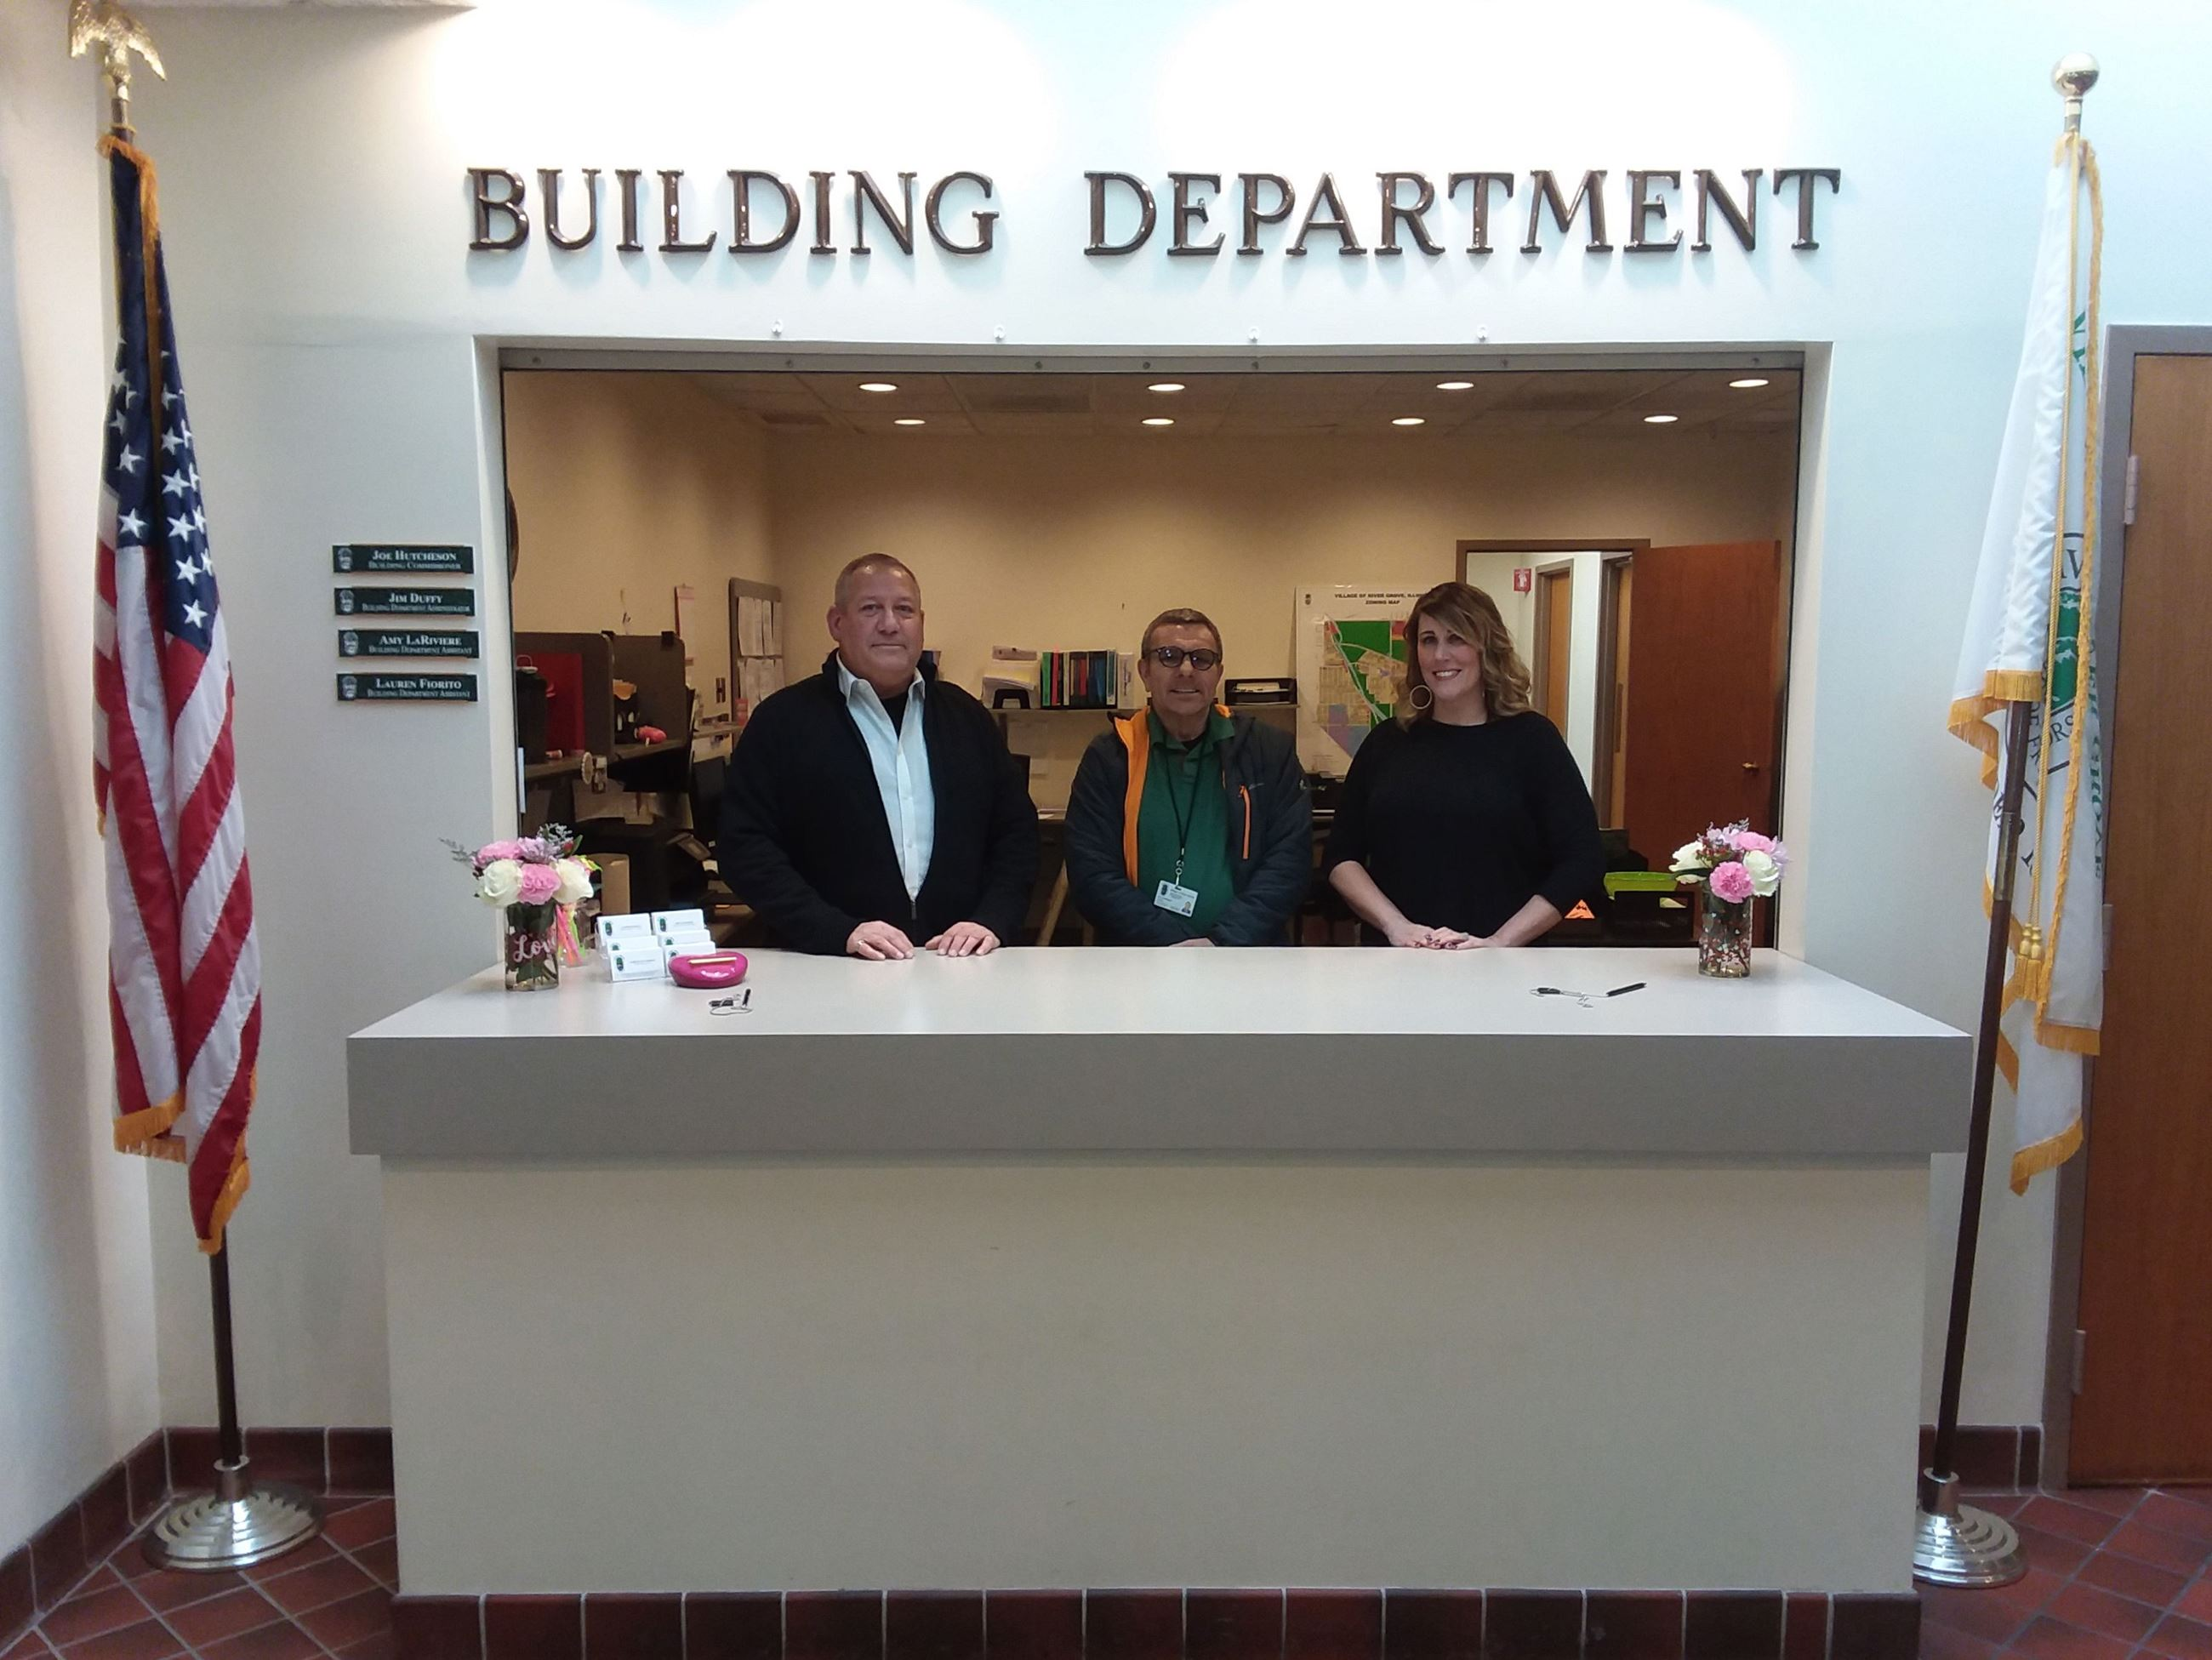 Building Department staff members Jim Duffy, Joe Hutcheson and Amy LaRiviere